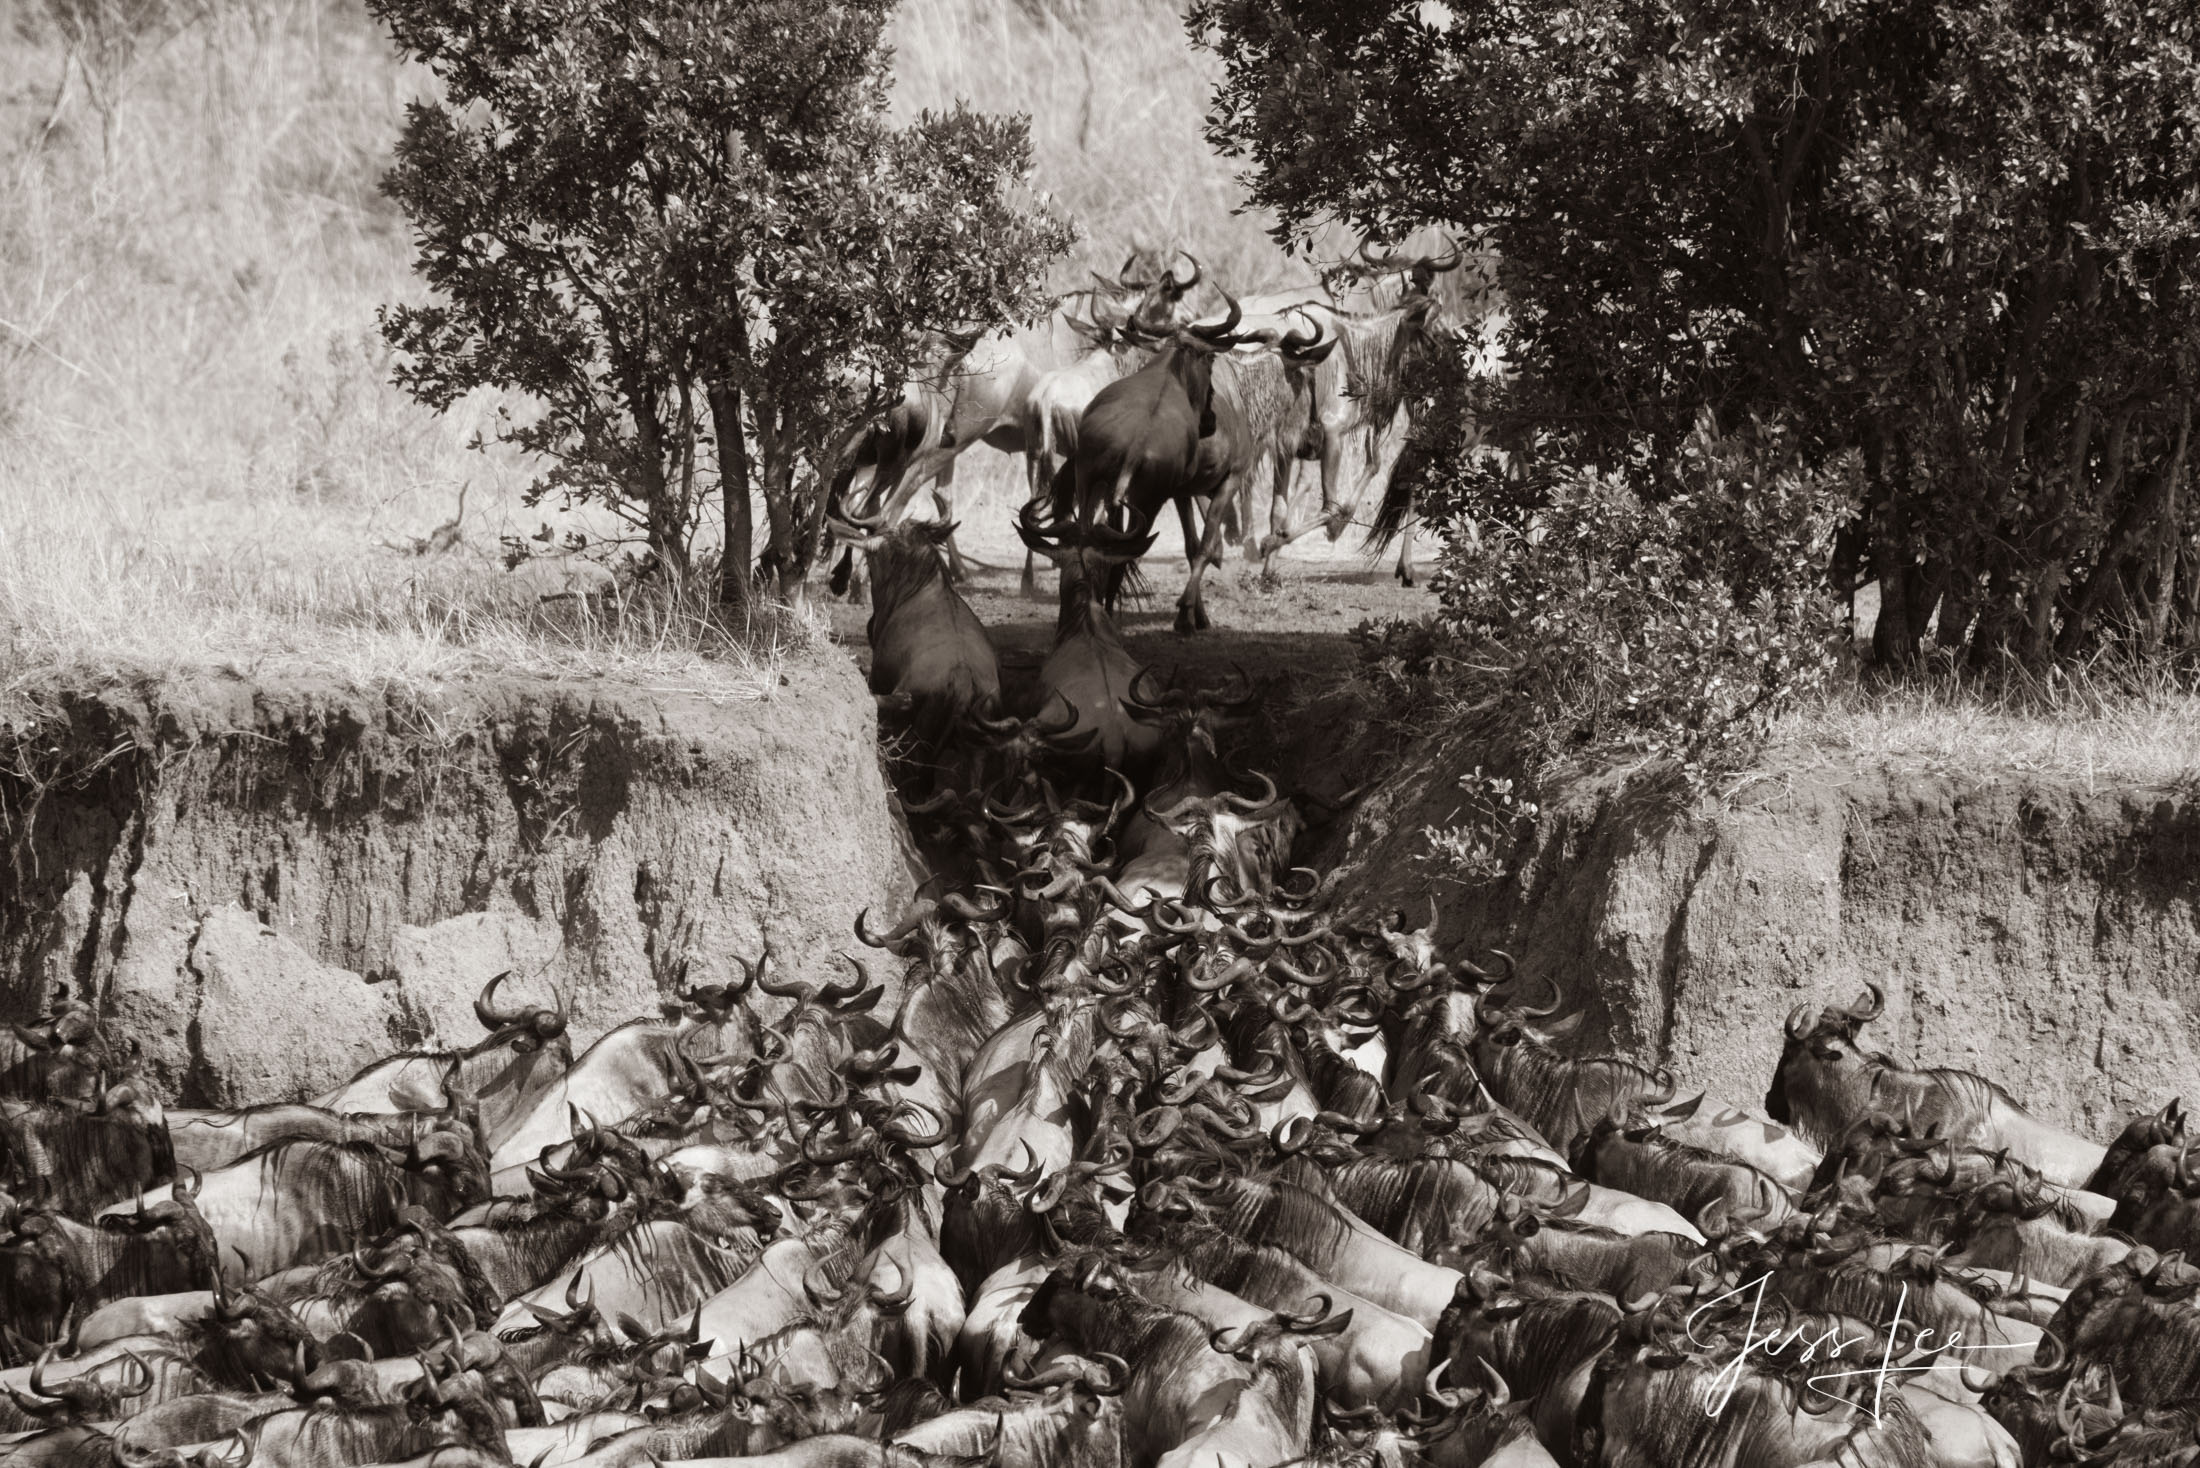 Black and White photo of African Wildebeest Migrating across the Mara River.